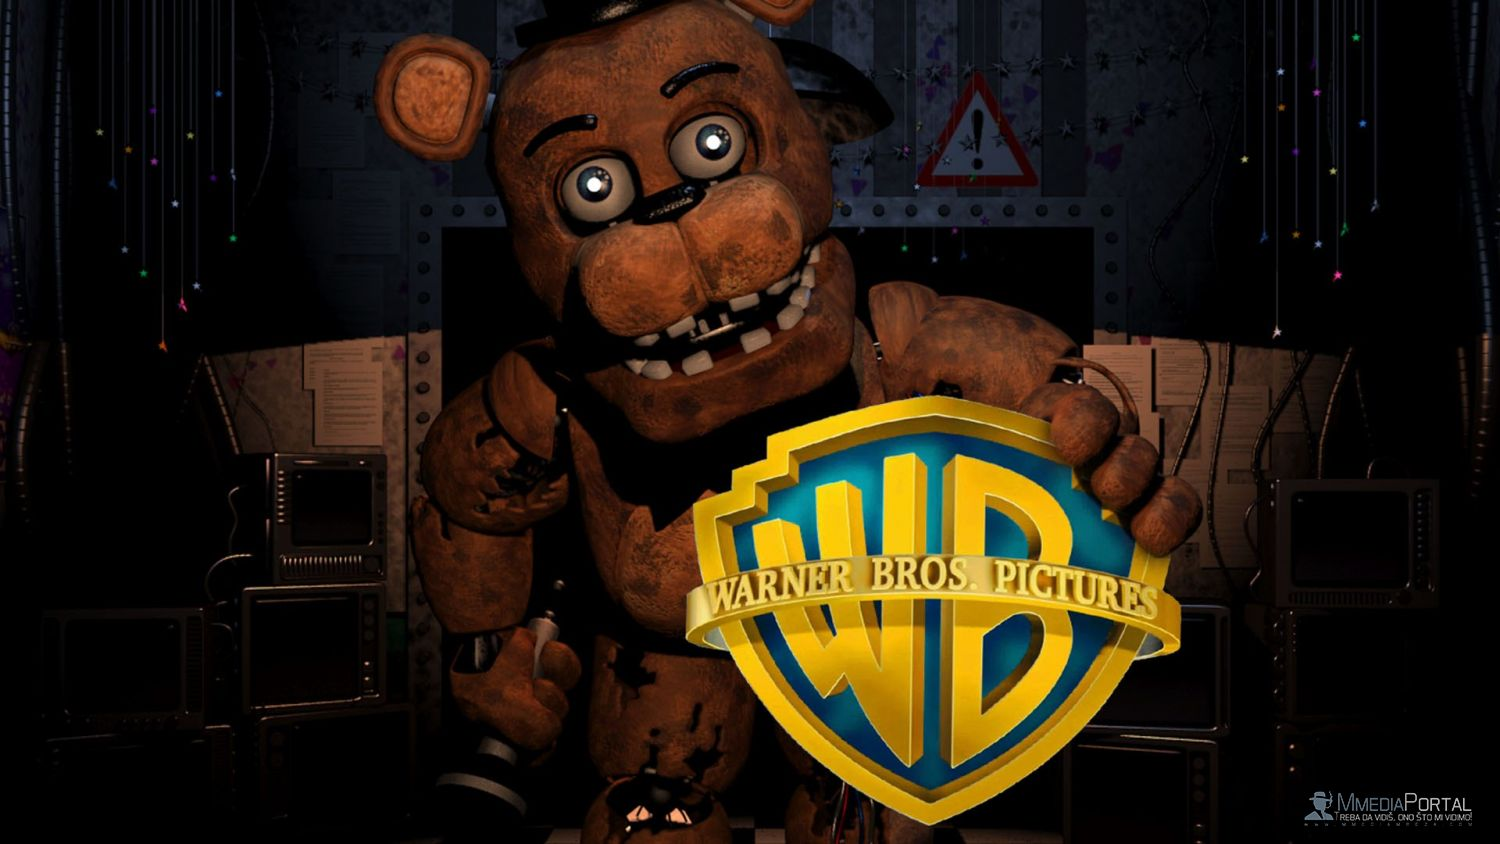 Stiže Five Nights at Freddy's igrani film